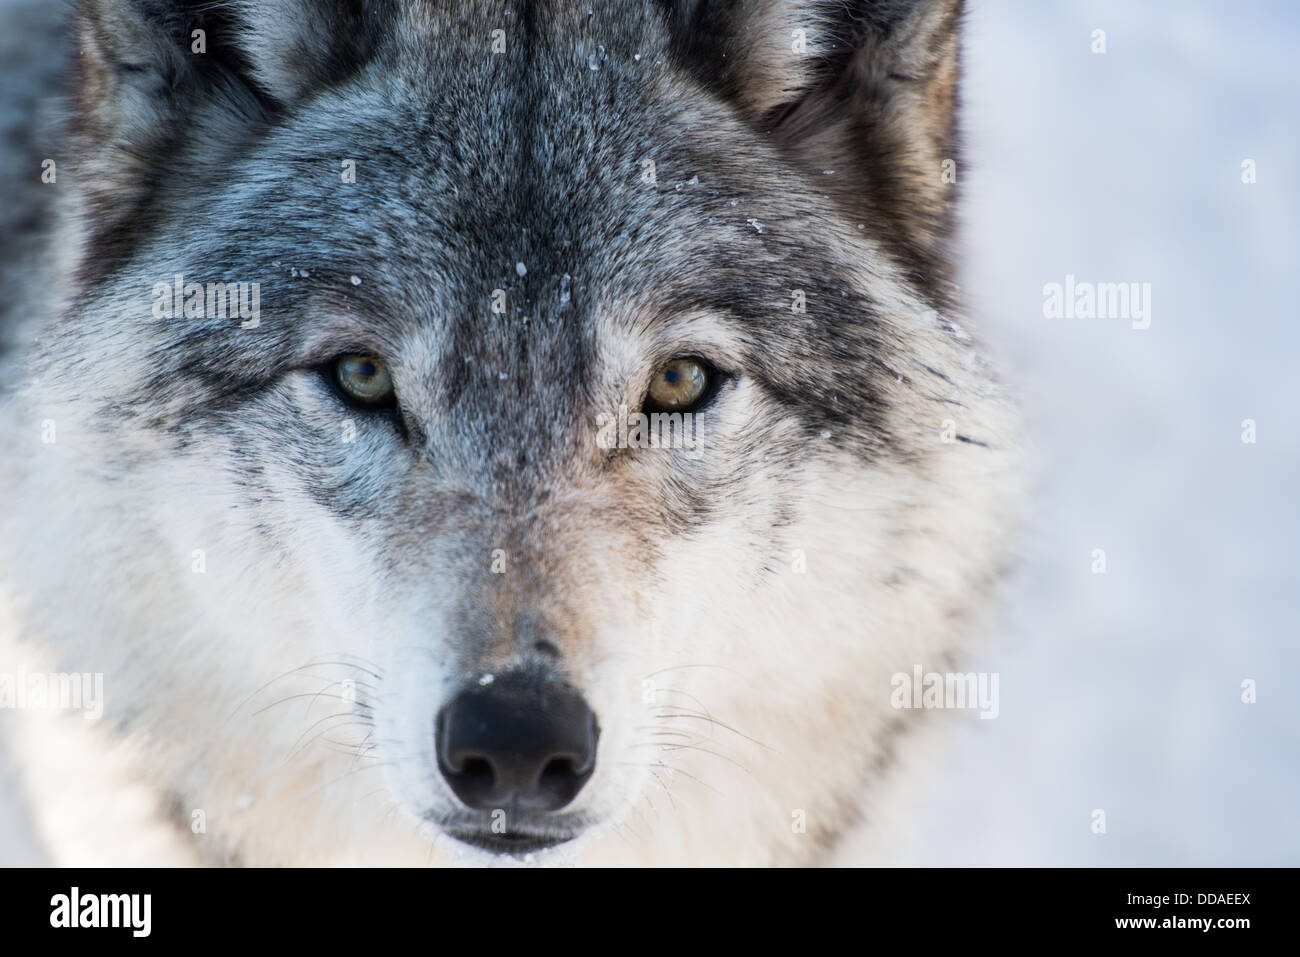 Wolf looking straight ahead - Stock Image